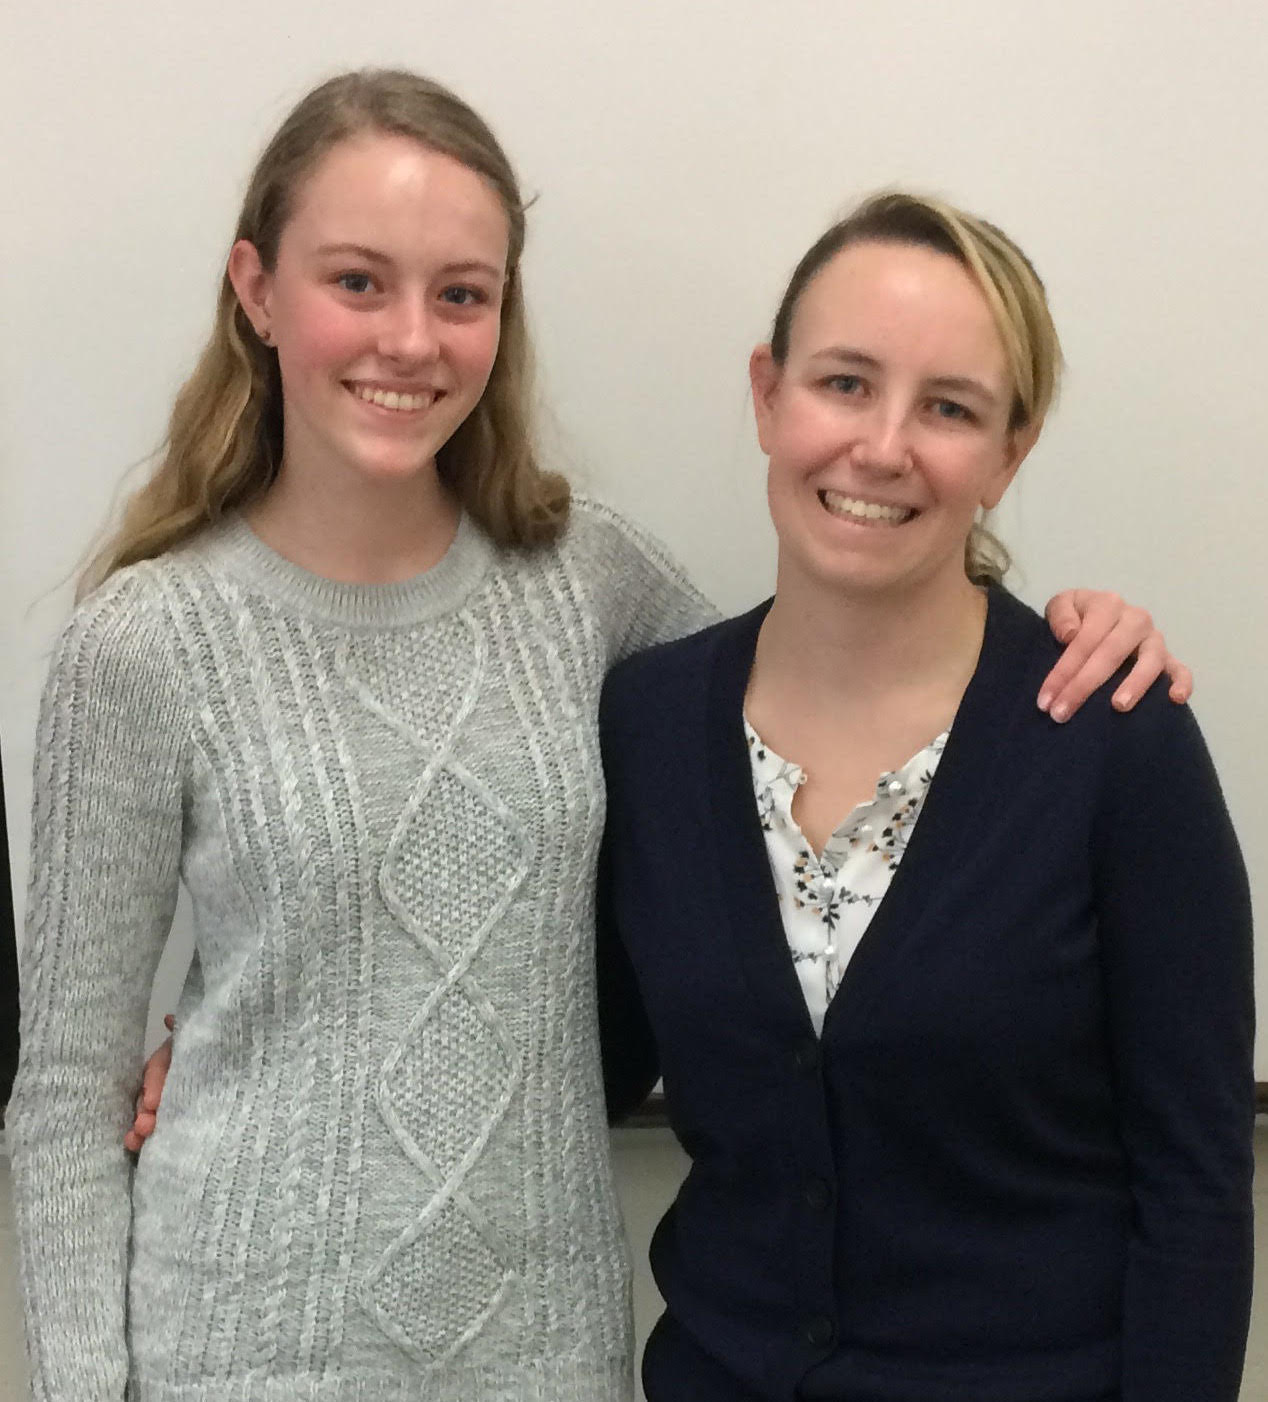 Sophomore Laura Snow won the DHS Poetry Out Loud competition organized by English teacher Elise Tobin. Snow now will compete at the state level.